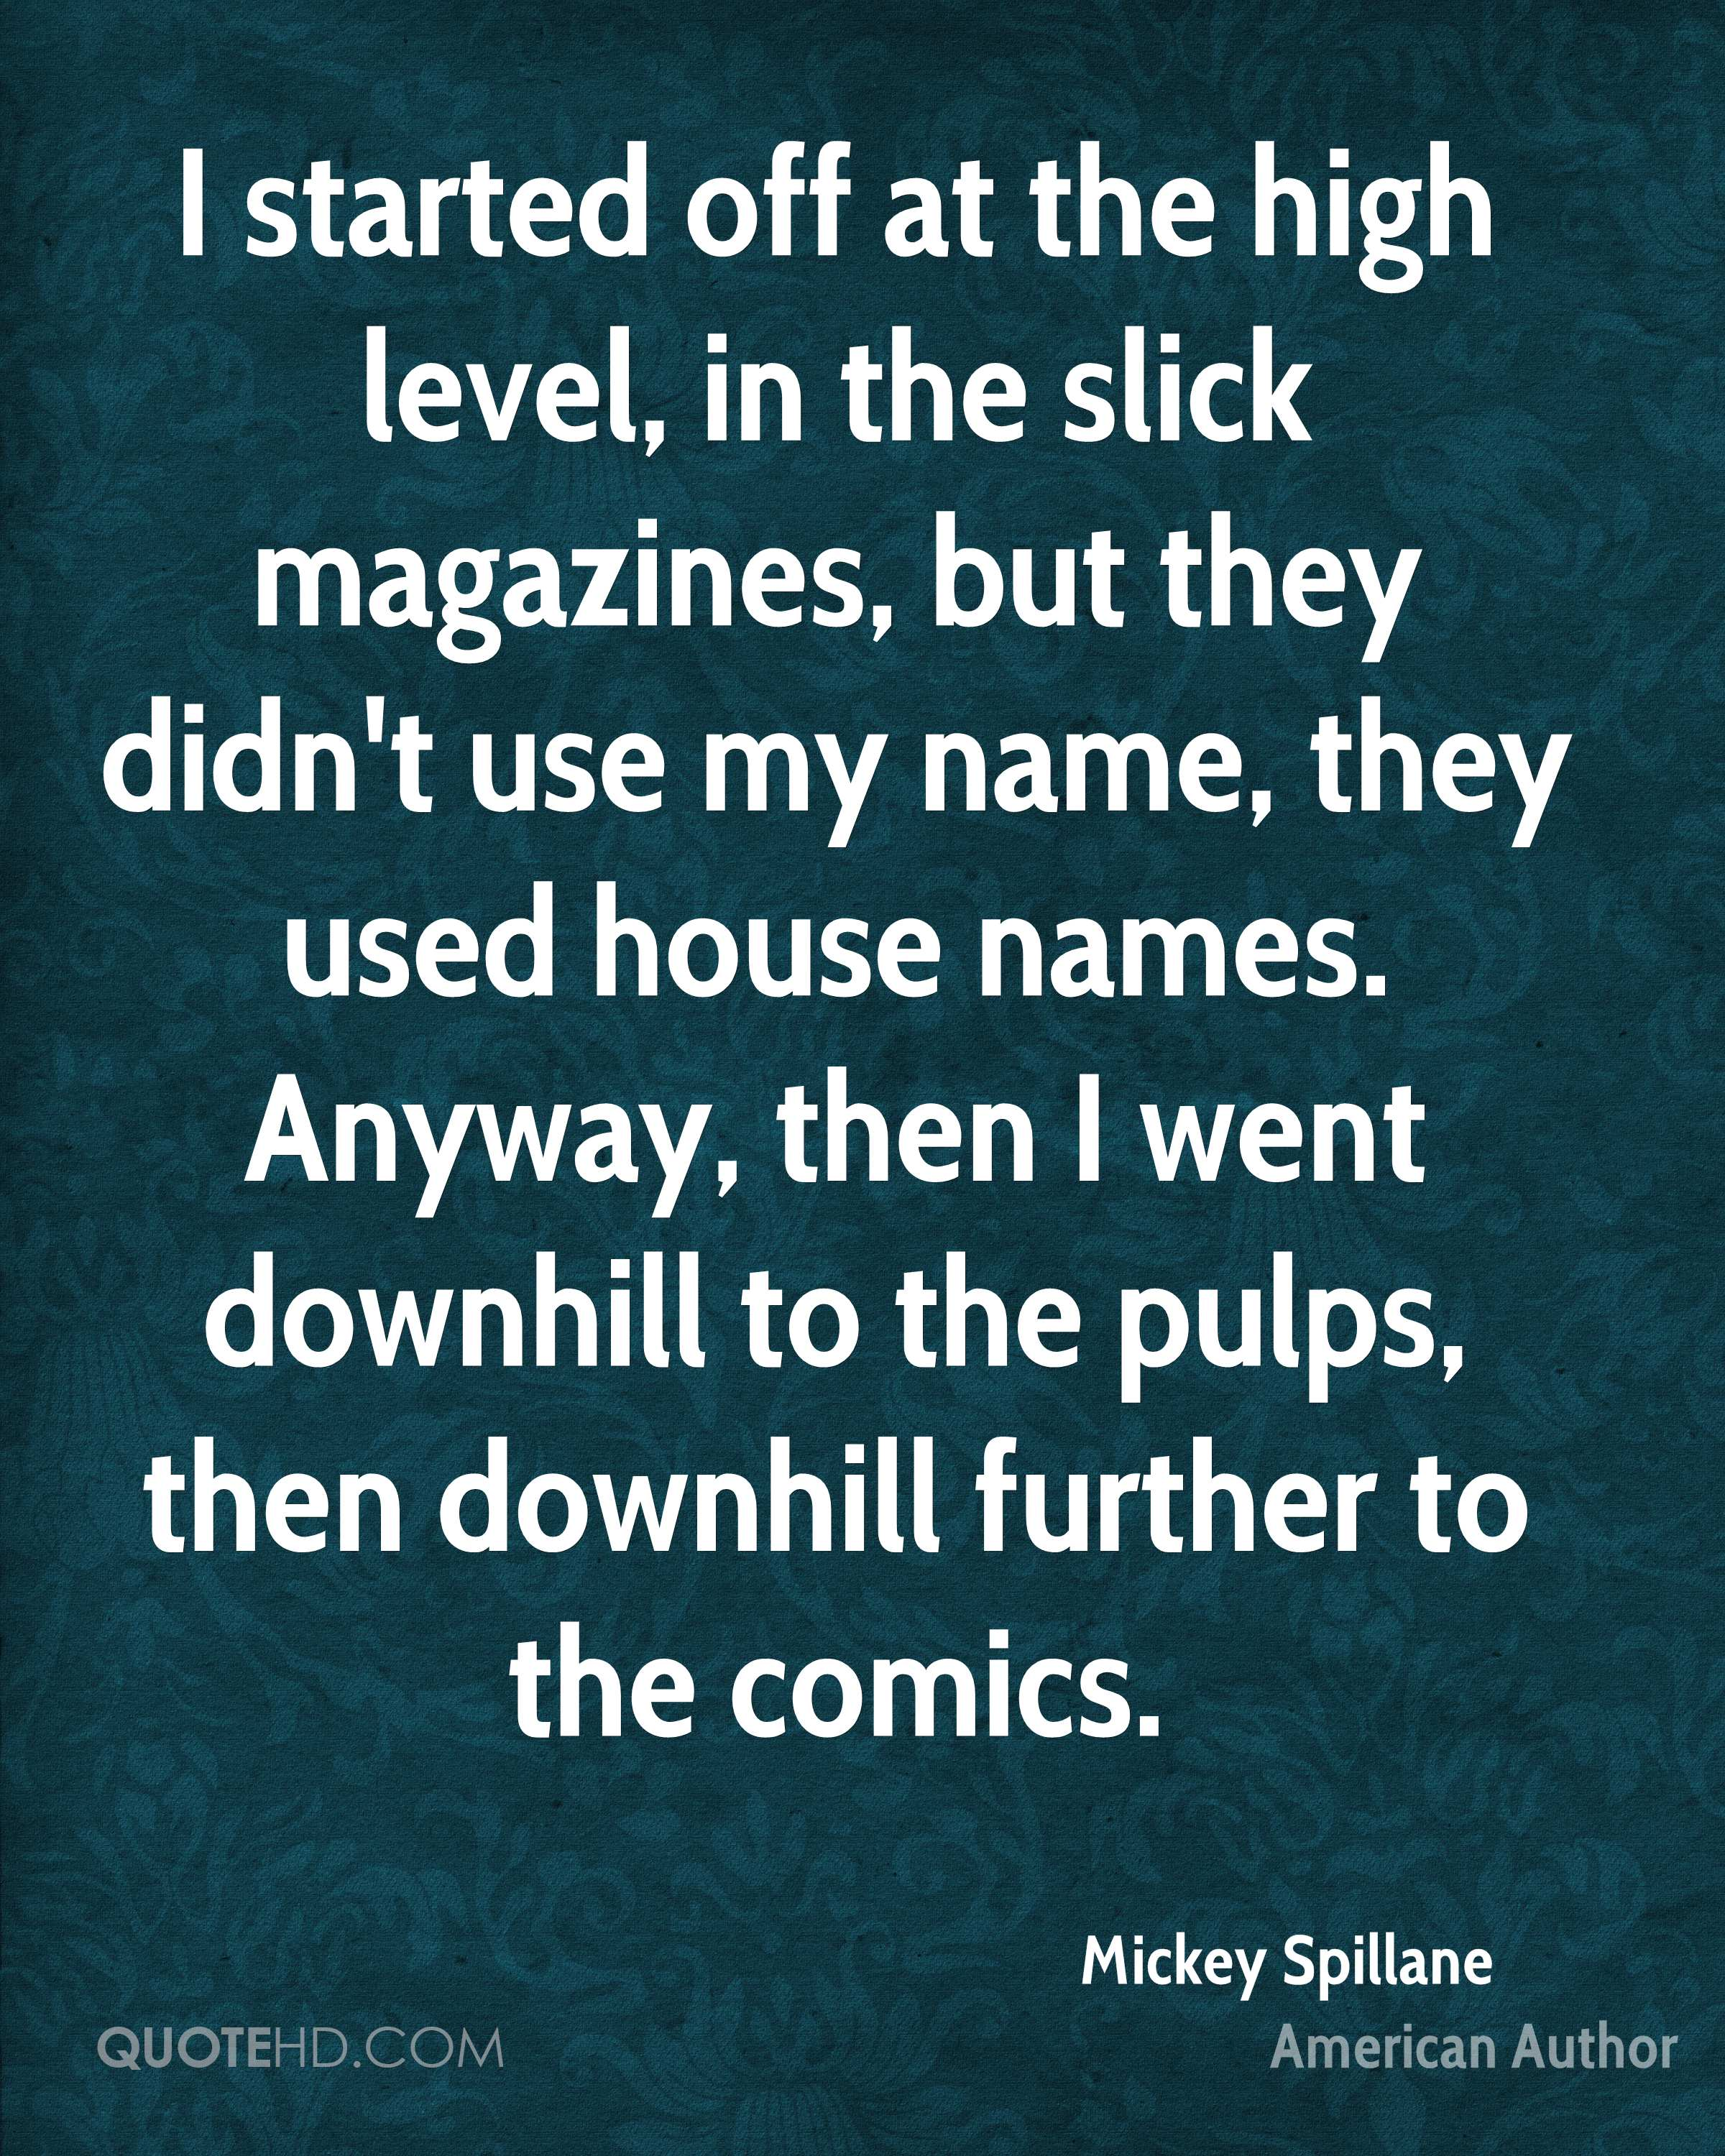 I started off at the high level, in the slick magazines, but they didn't use my name, they used house names. Anyway, then I went downhill to the pulps, then downhill further to the comics.